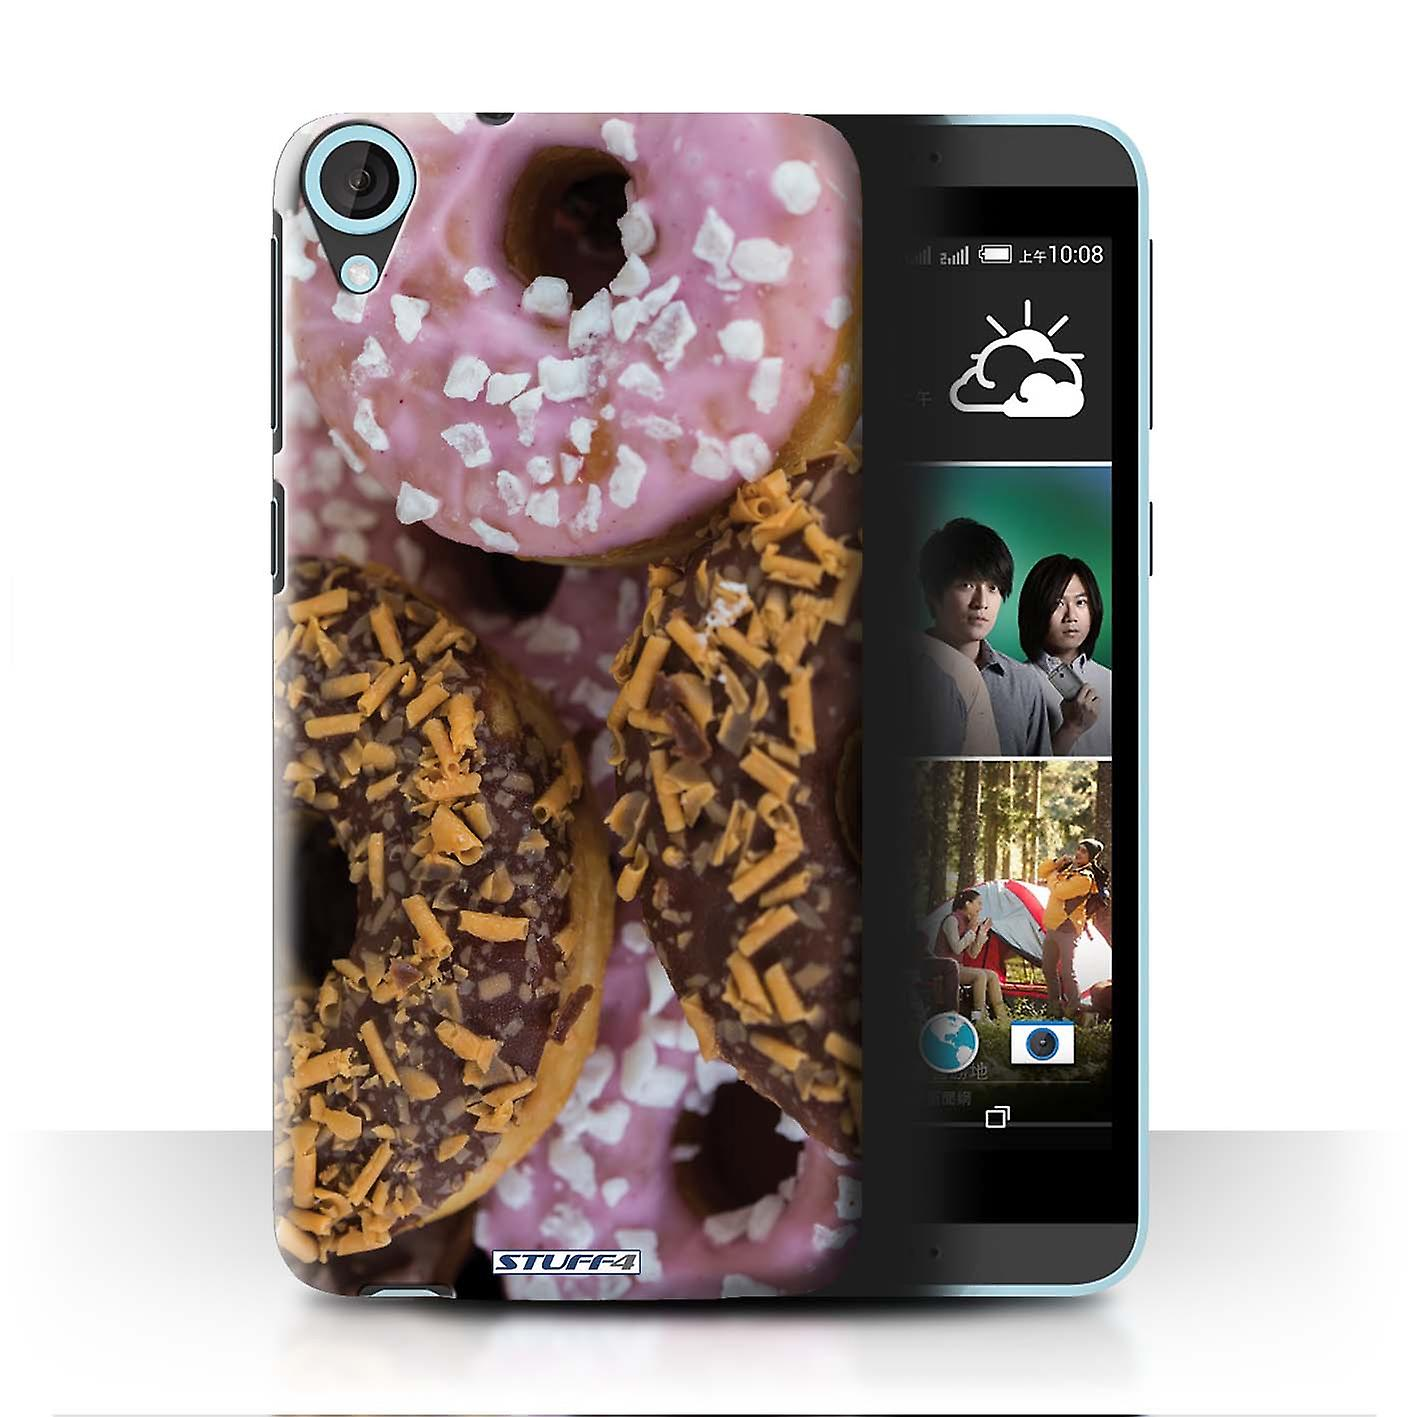 STUFF4 Case/Cover for HTC Desire 820s Dual/Chocolate/Pink/Tasty Donuts